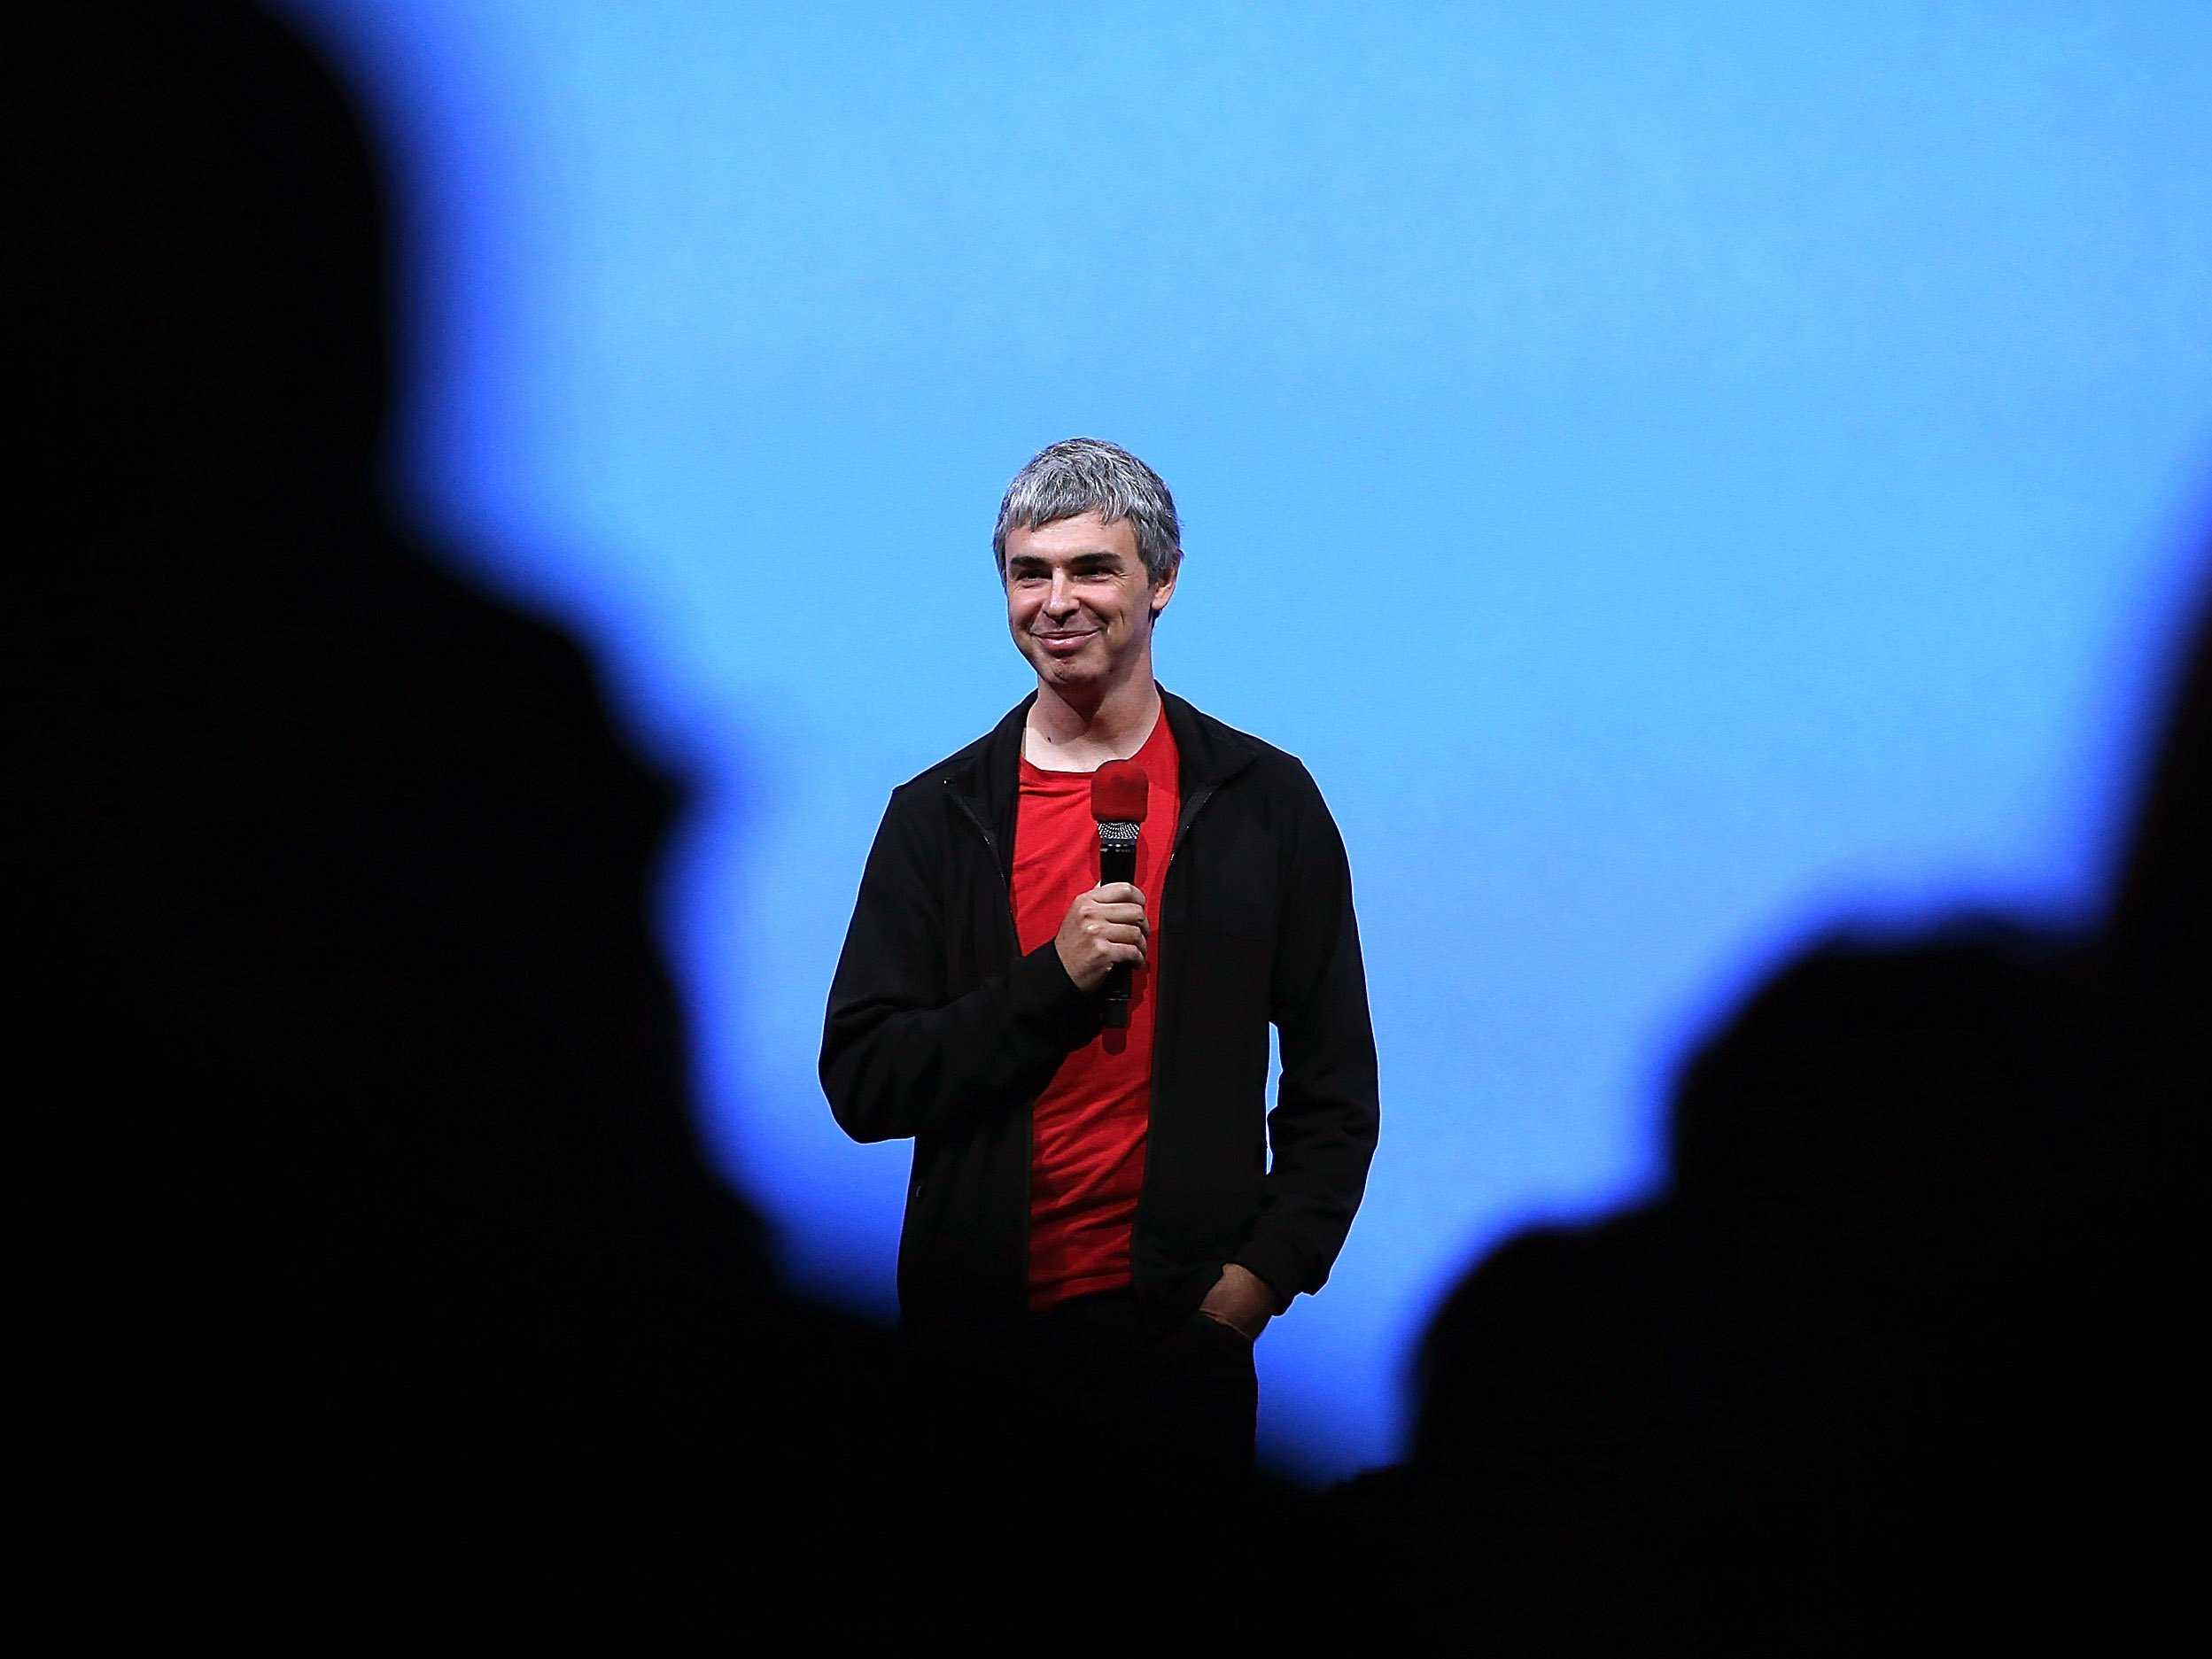 Travis Kalanick used to think of Larry Page and Google like 'a big brother' until they became his worst nightmare